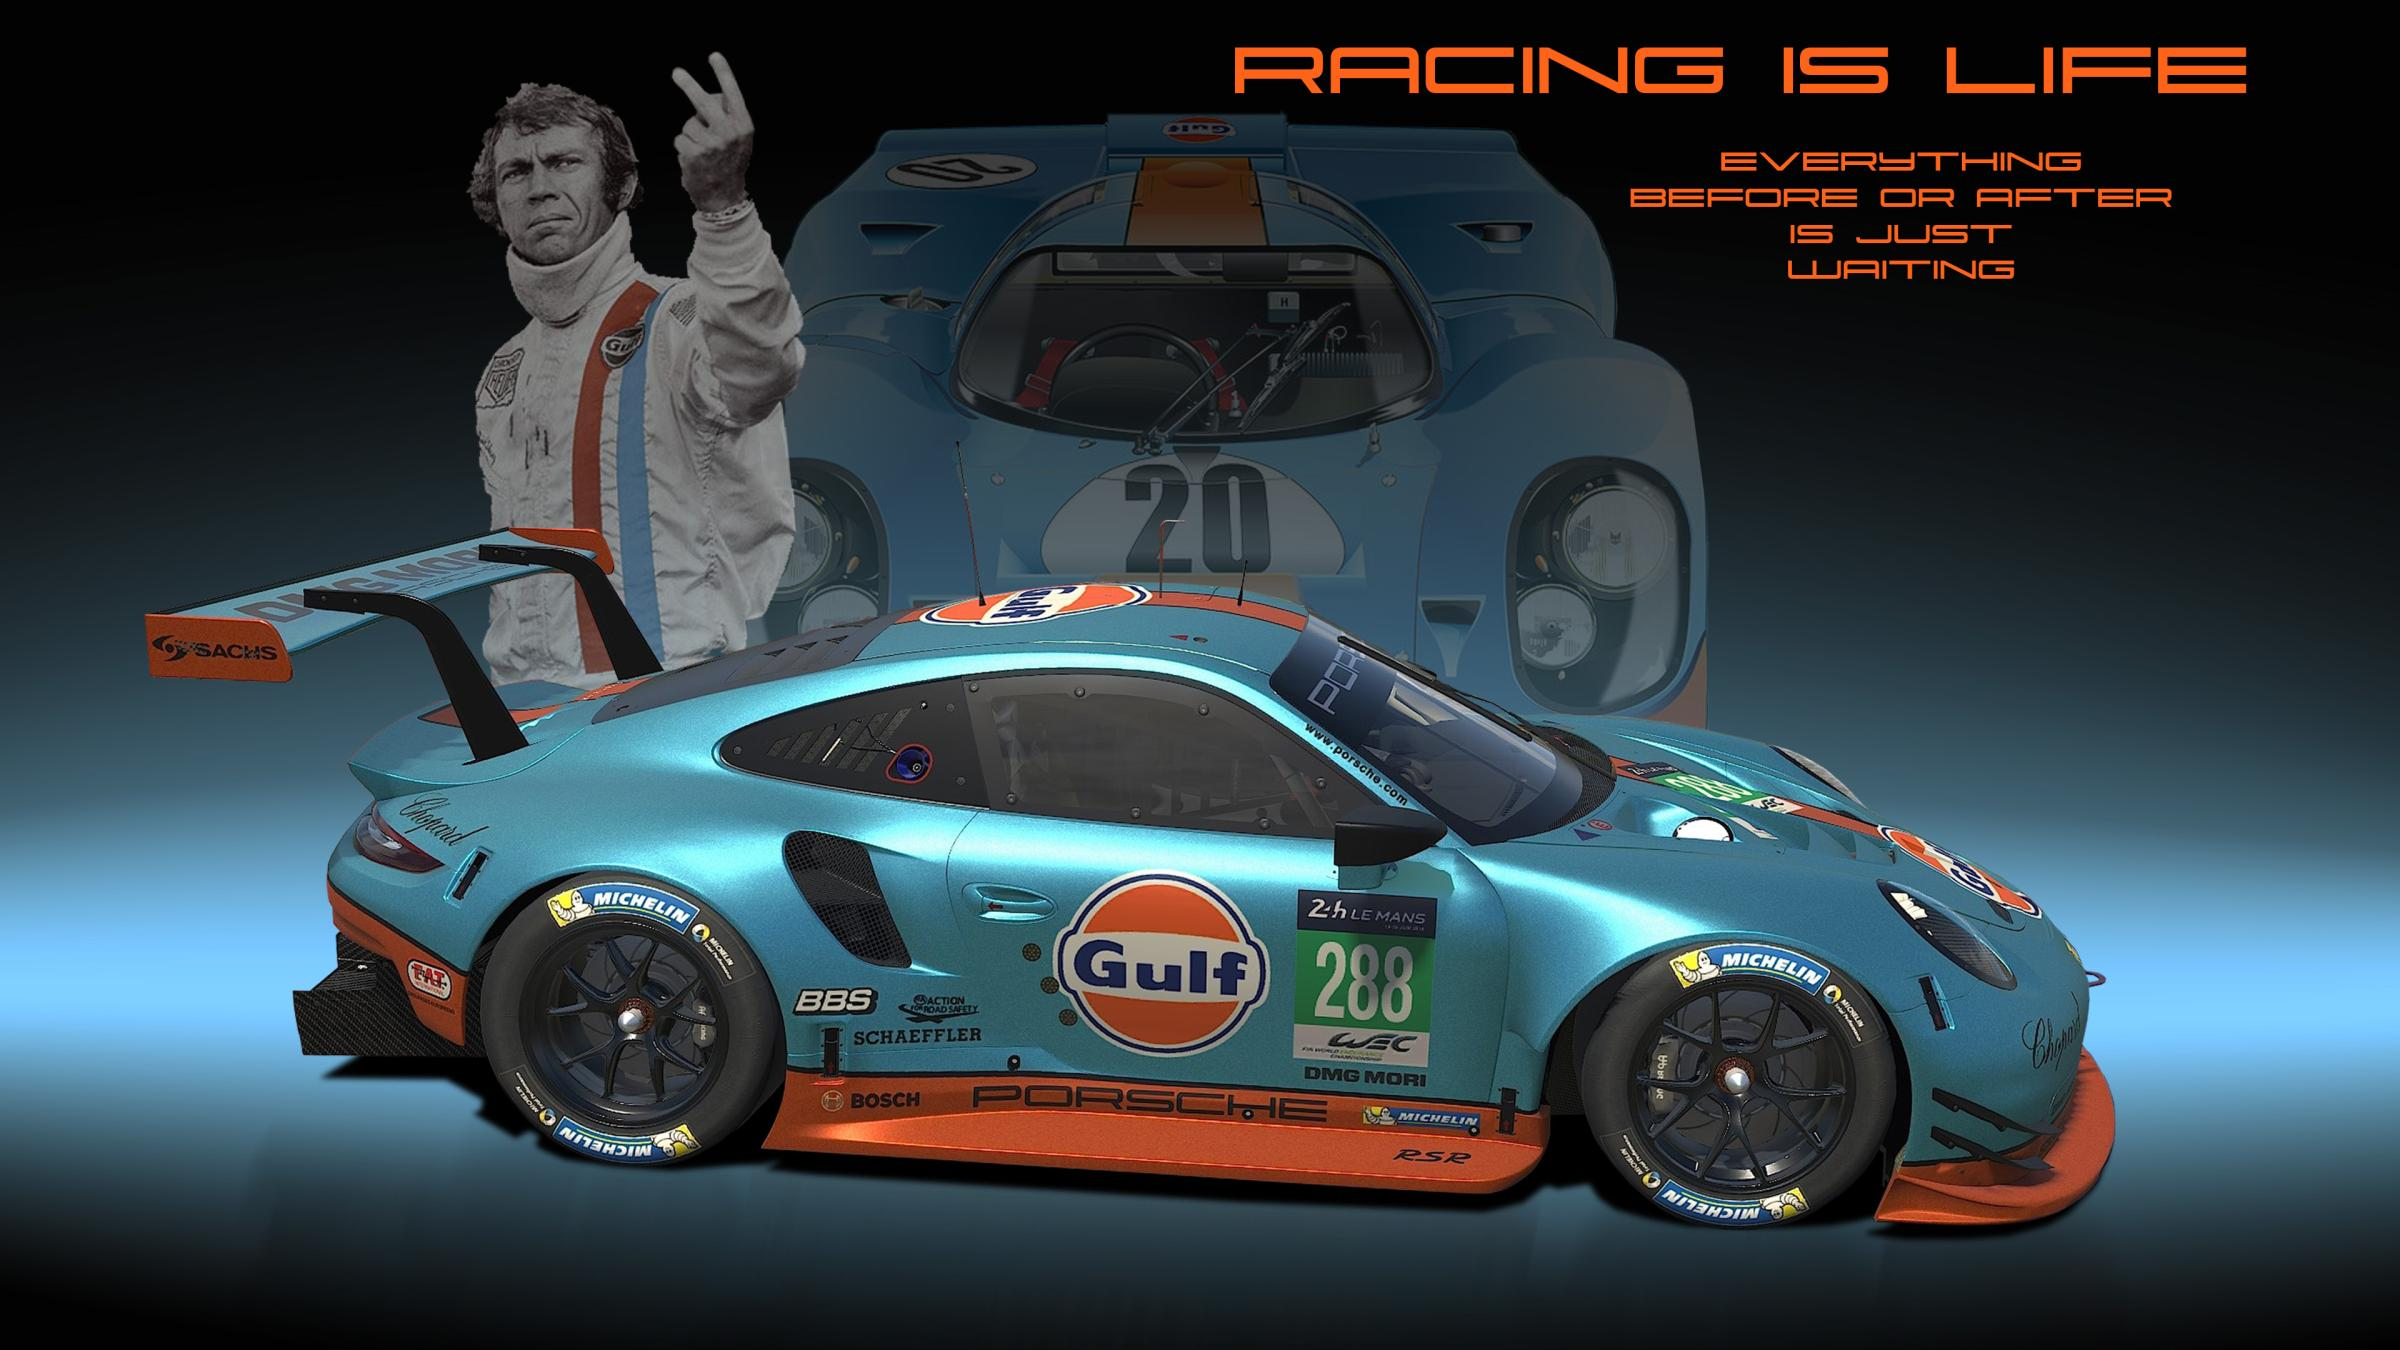 Preview of Gulf 911 RSR by Michael Koroleff